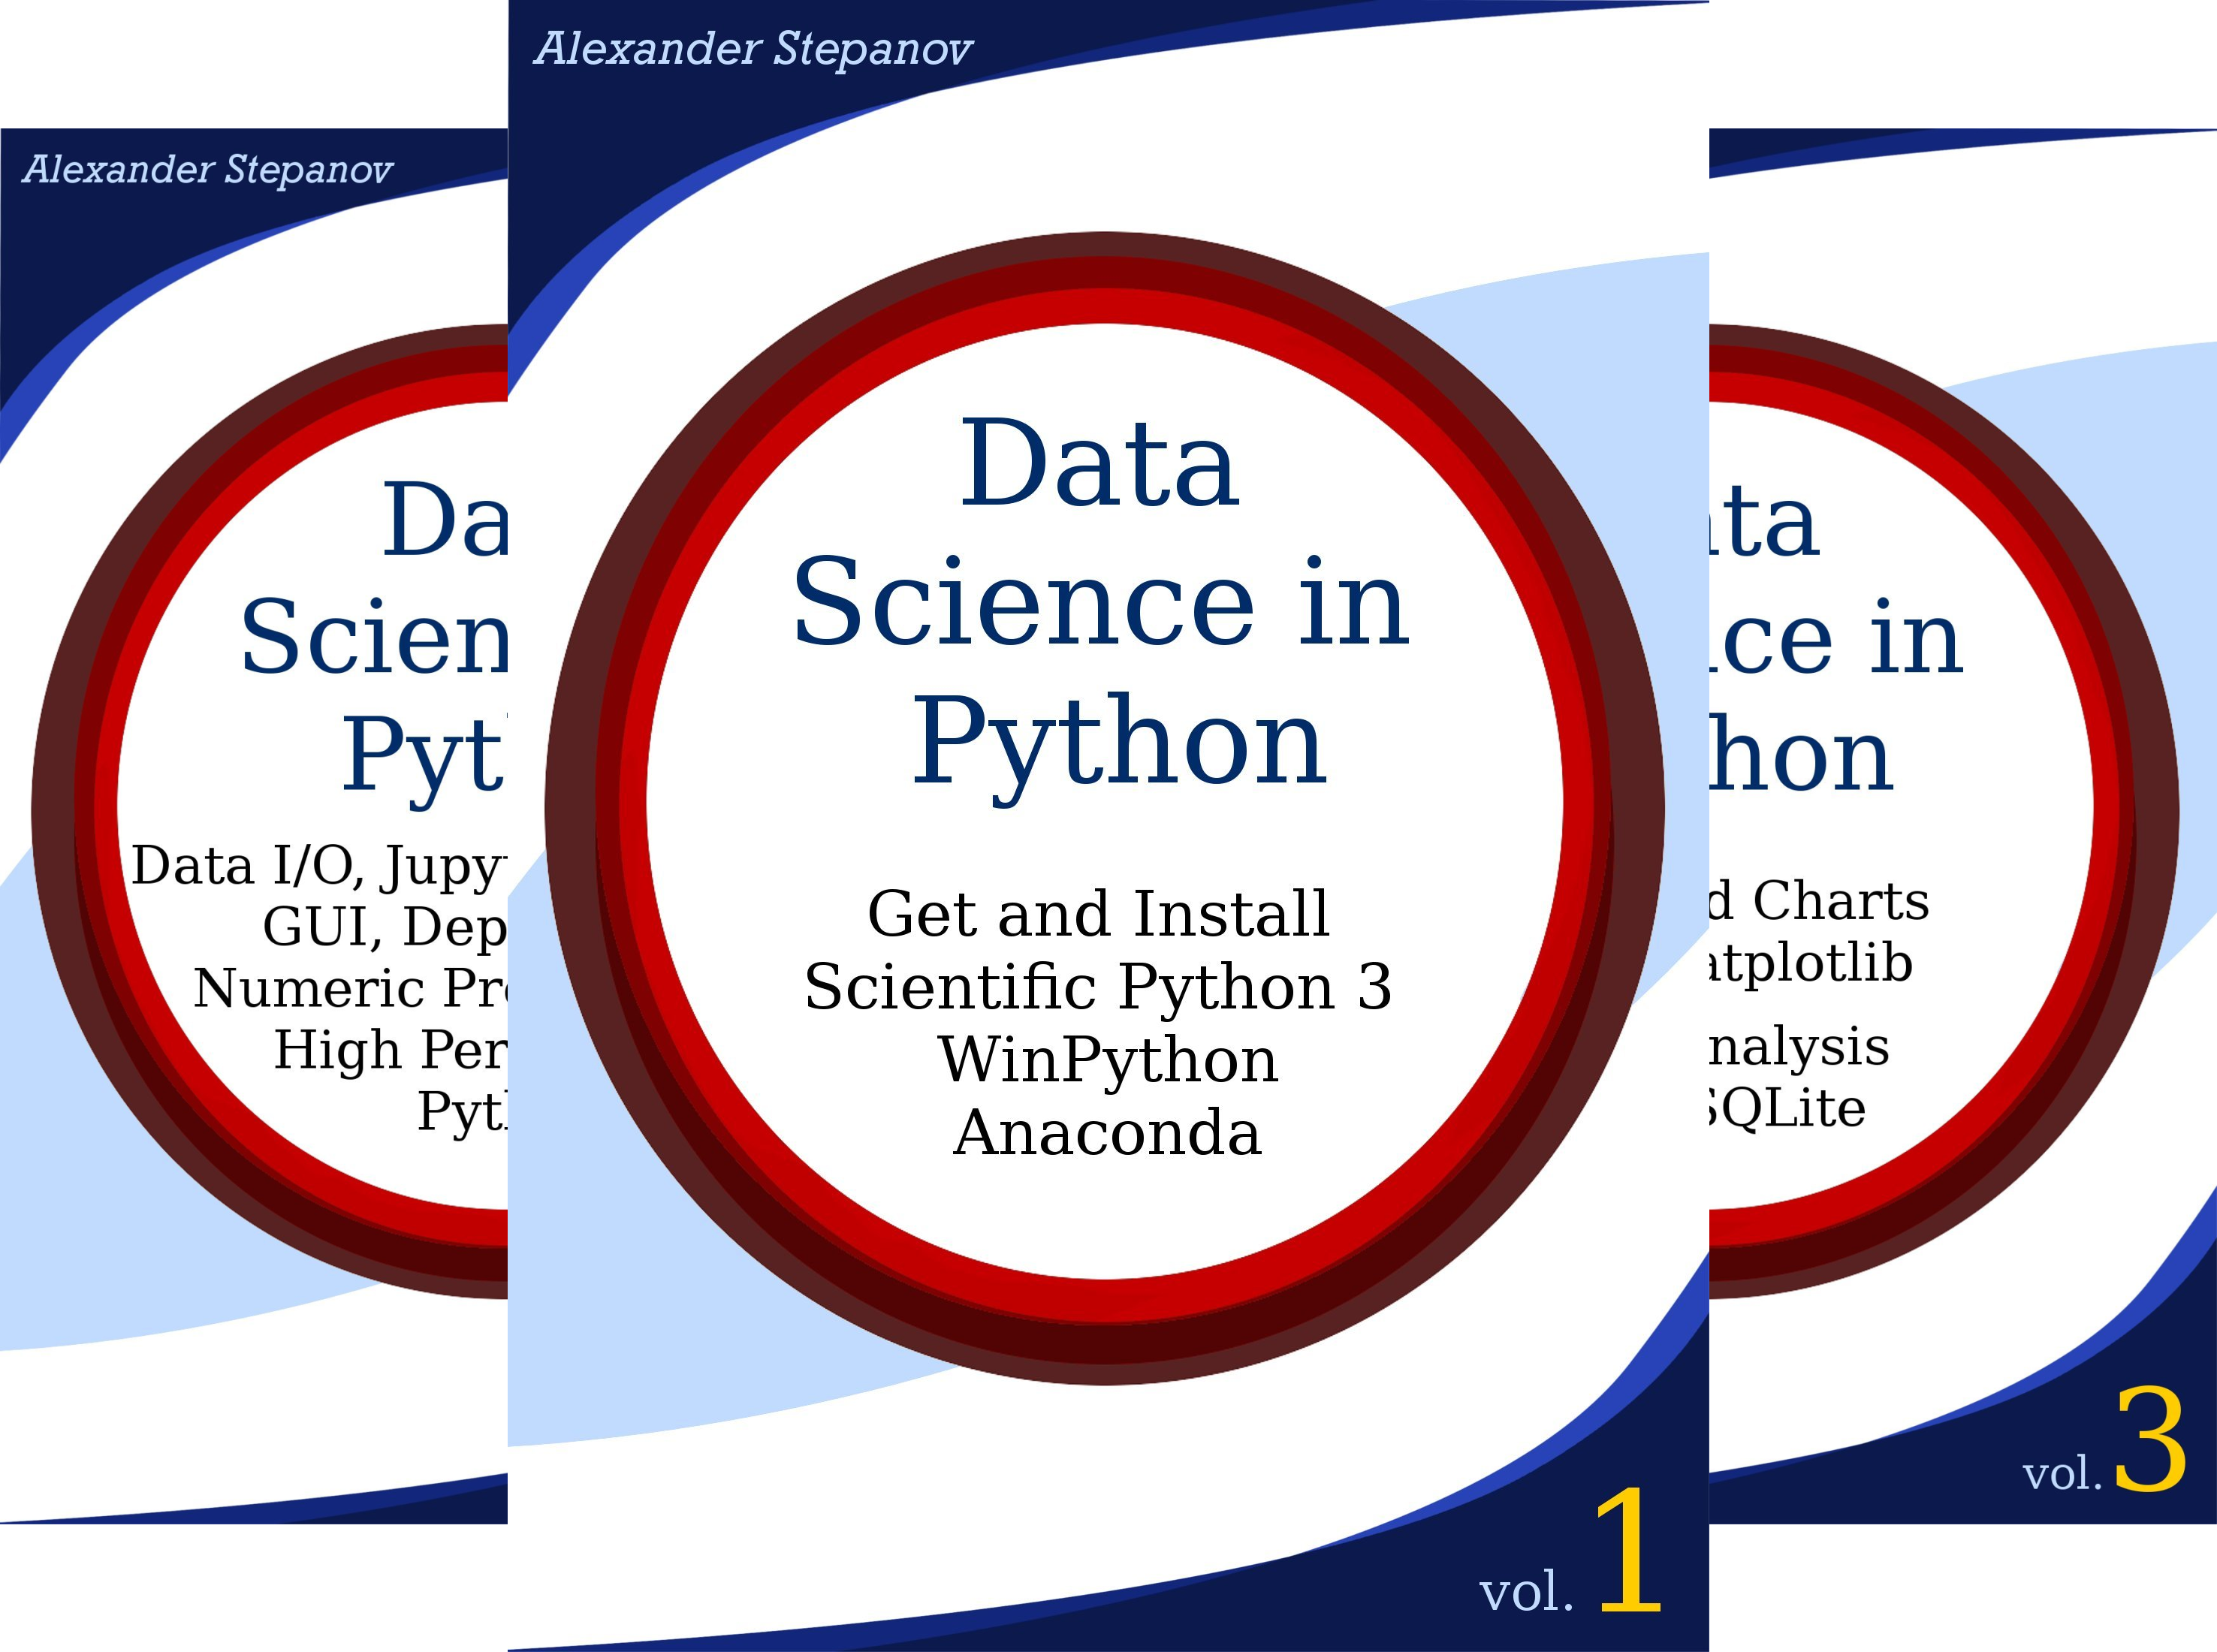 Data Science in Python (3 Book Series)